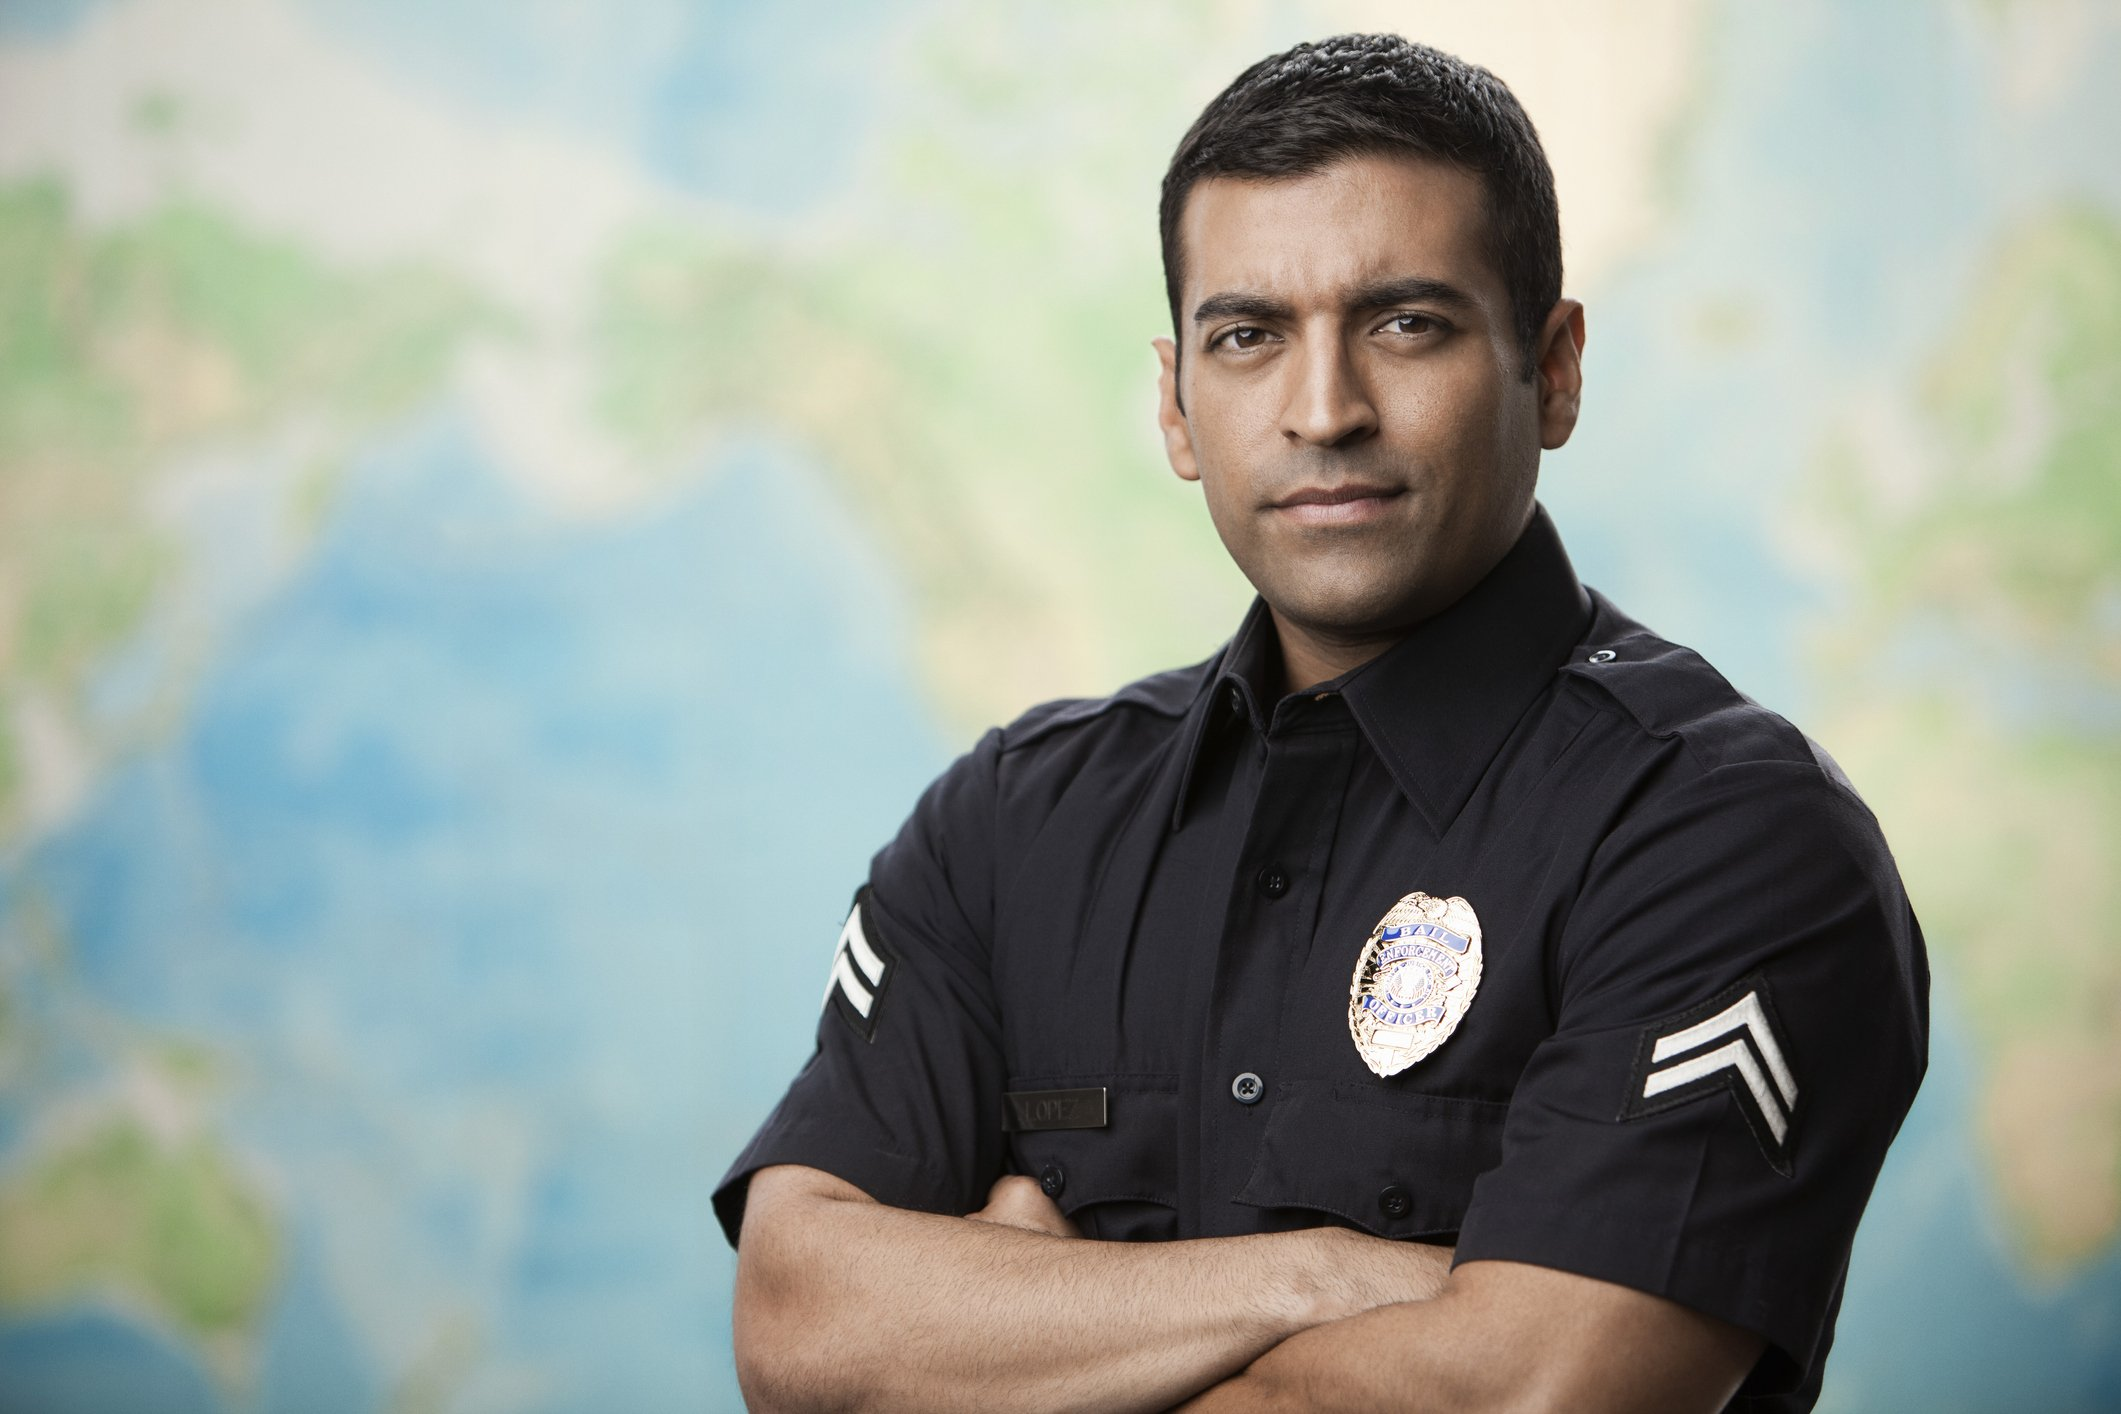 Serious Hispanic policeman with arms crossed.   Photo: Getty Images